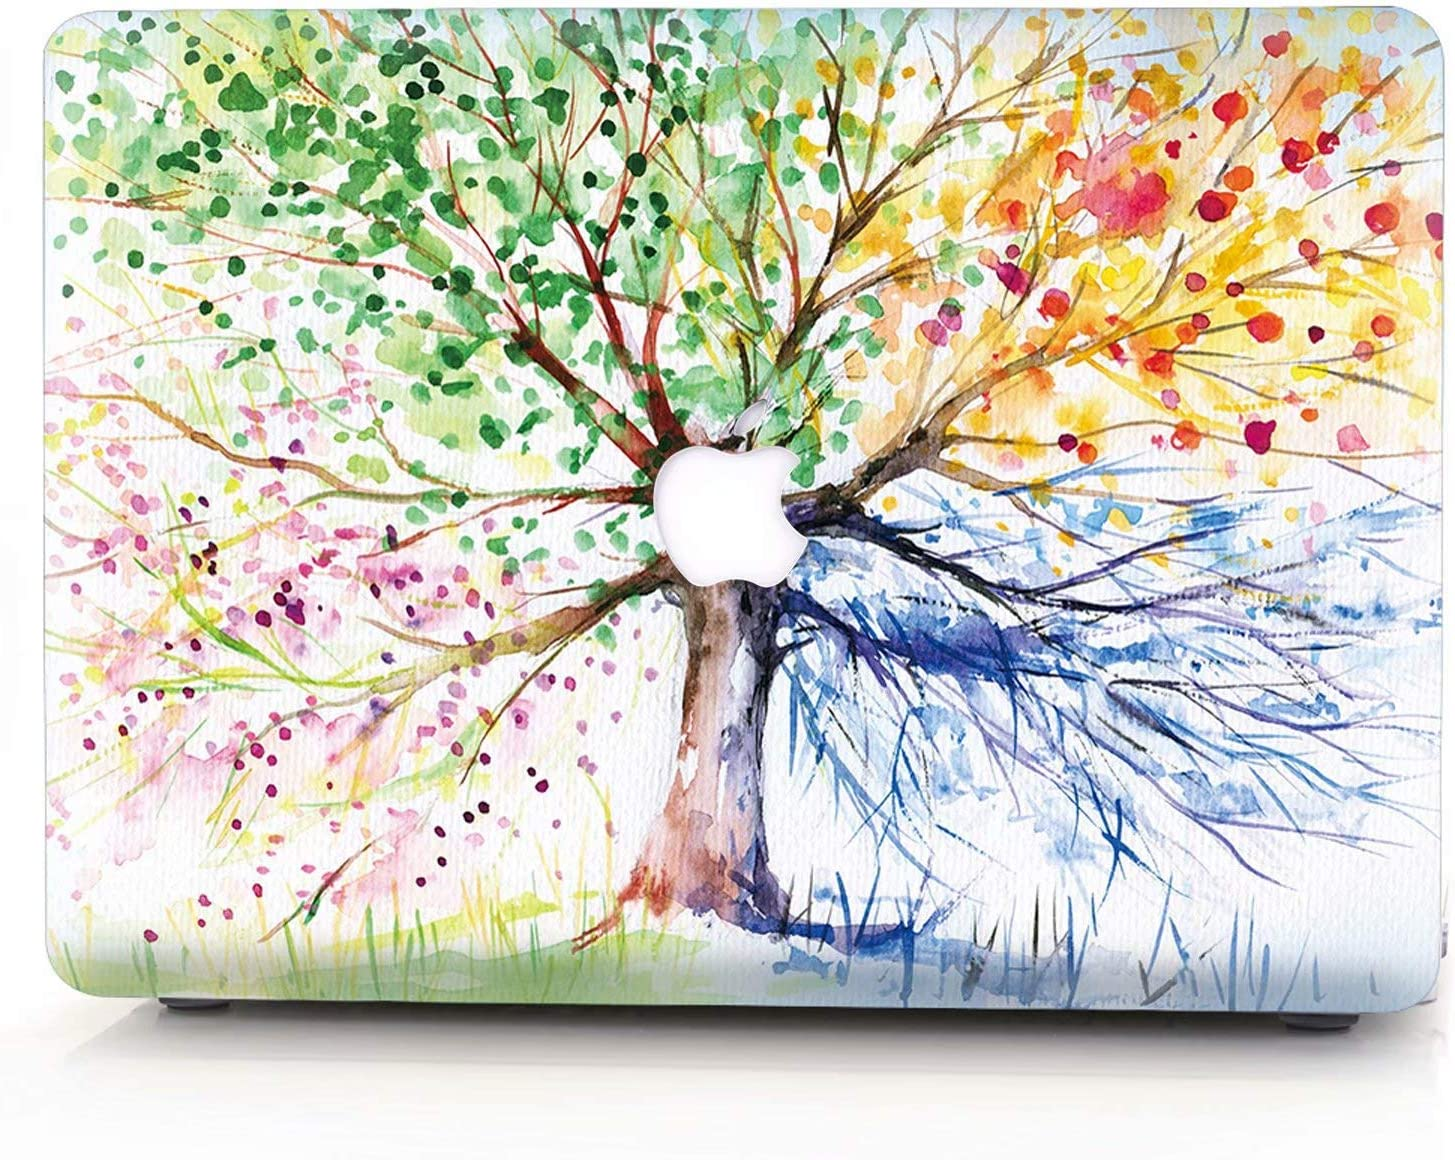 MacBook Retina 12 Case - AQYLQ Landscape Pattern Hard Cover Snap On Protective Case for The New MacBook 12